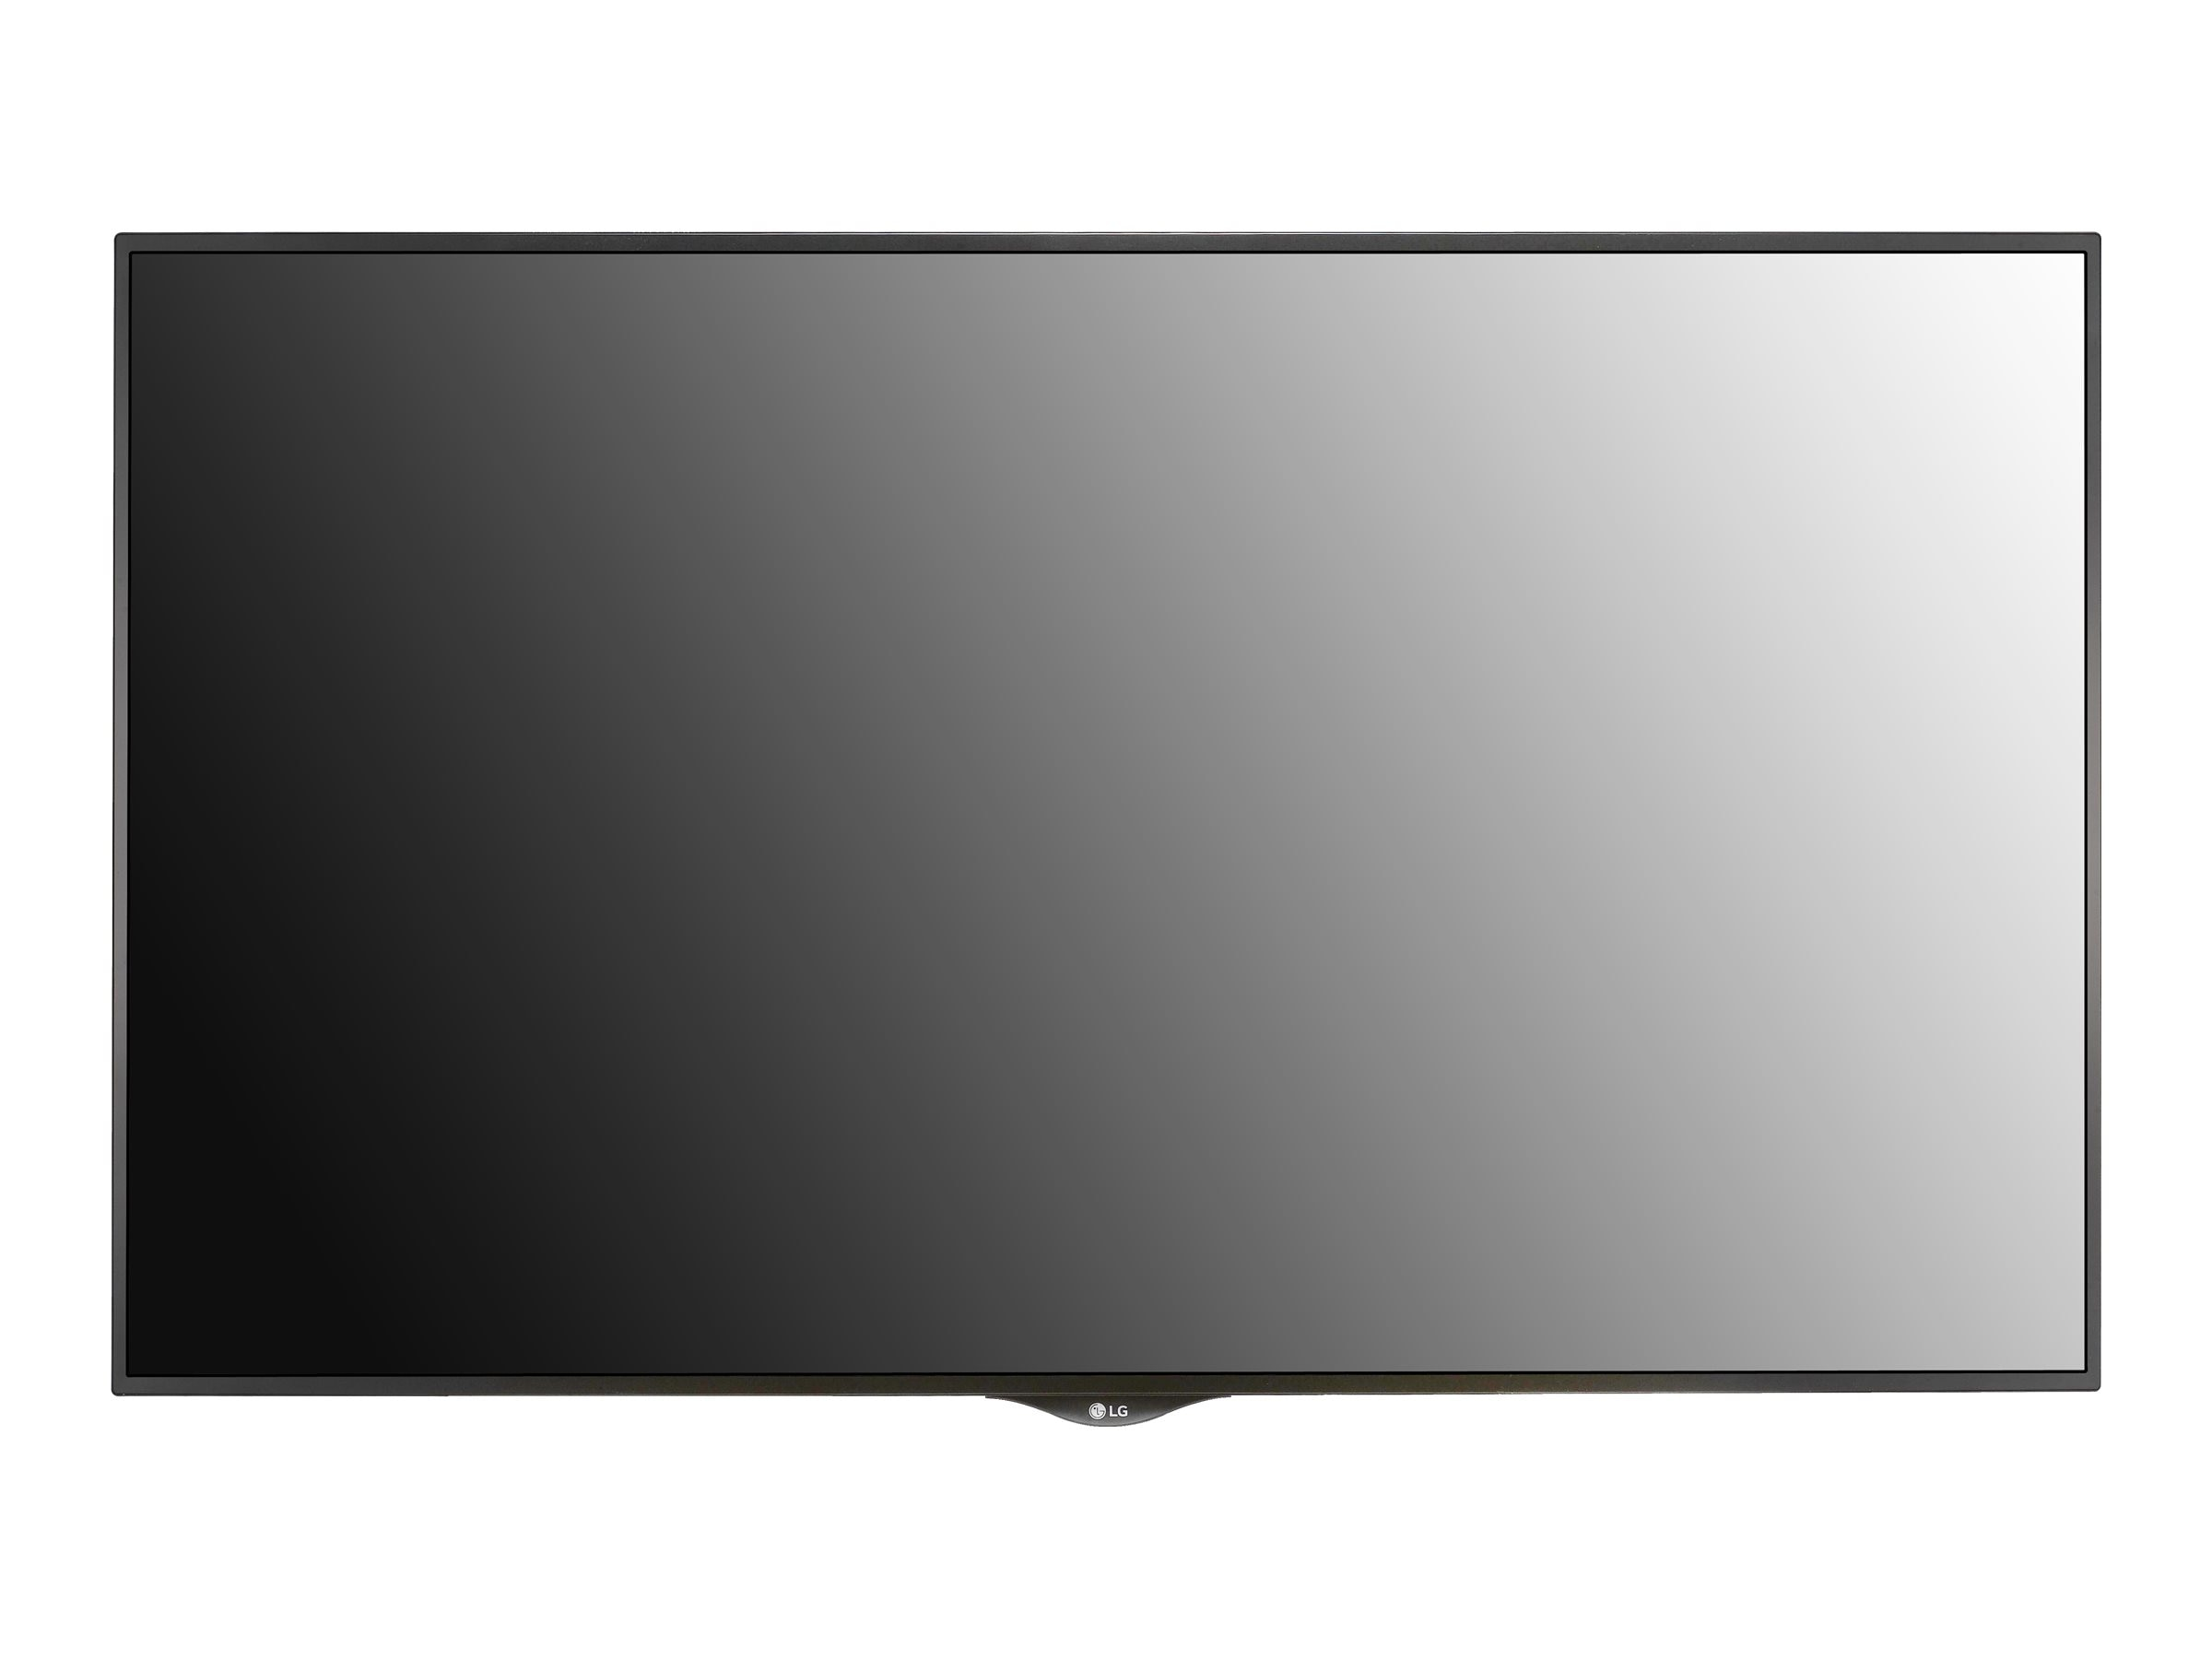 LG 55 XS2B-B Full HD LED-LCD Hospitality TV, Black